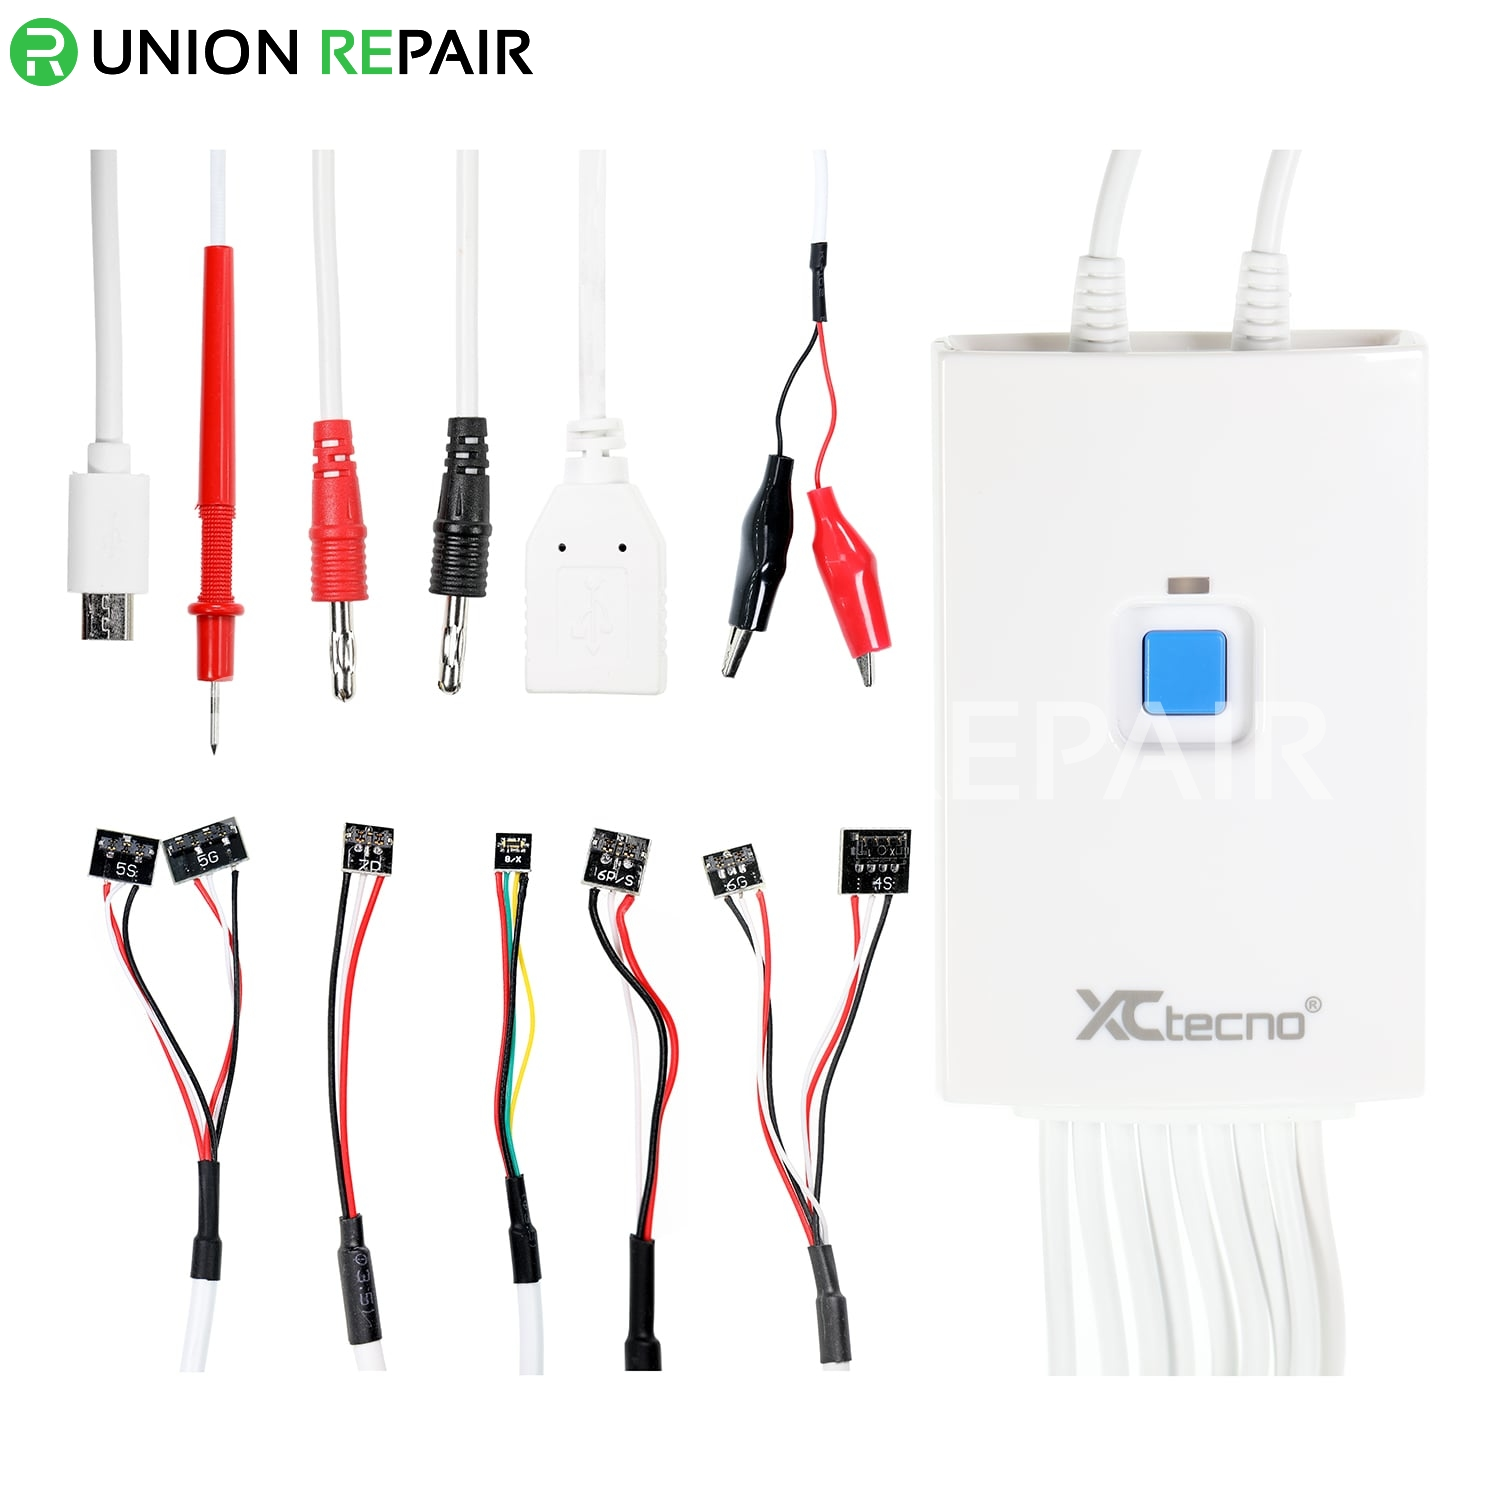 K-100A Phone Power Line with Original Battery Chip Inside for iPhone 4-X